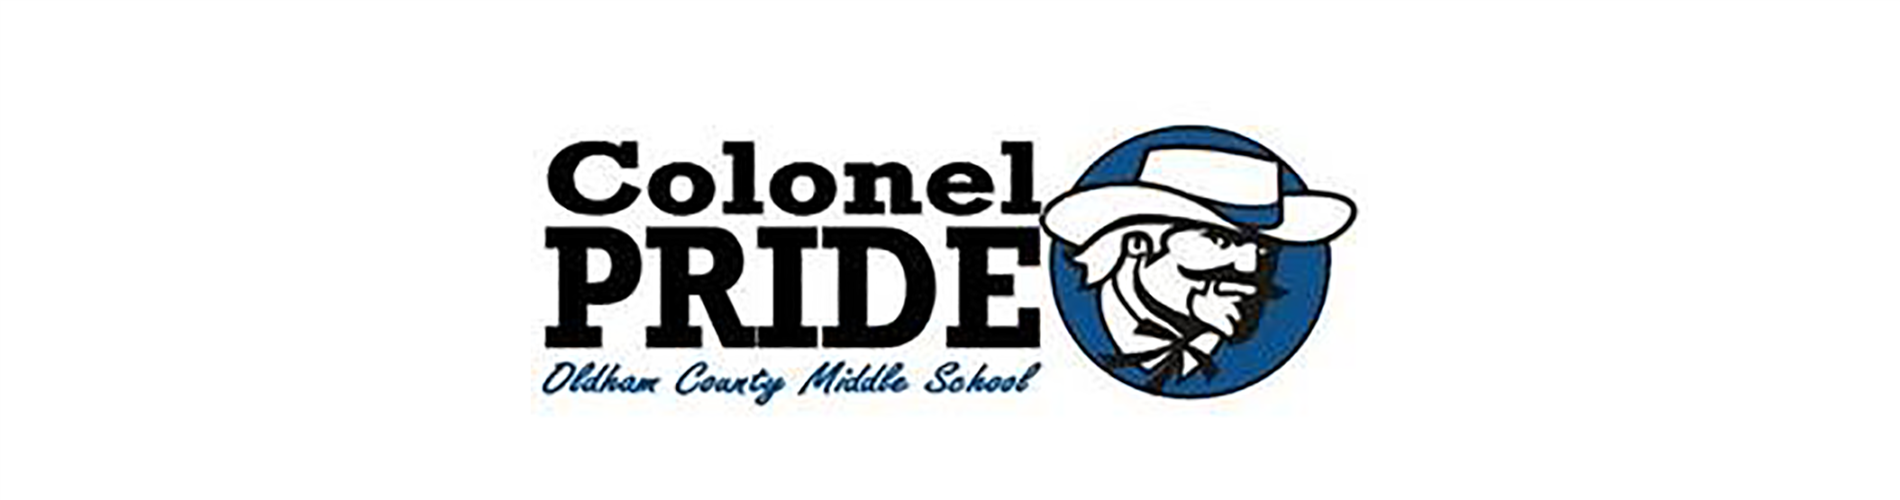 Colonel Pride - Oldham County Middle School